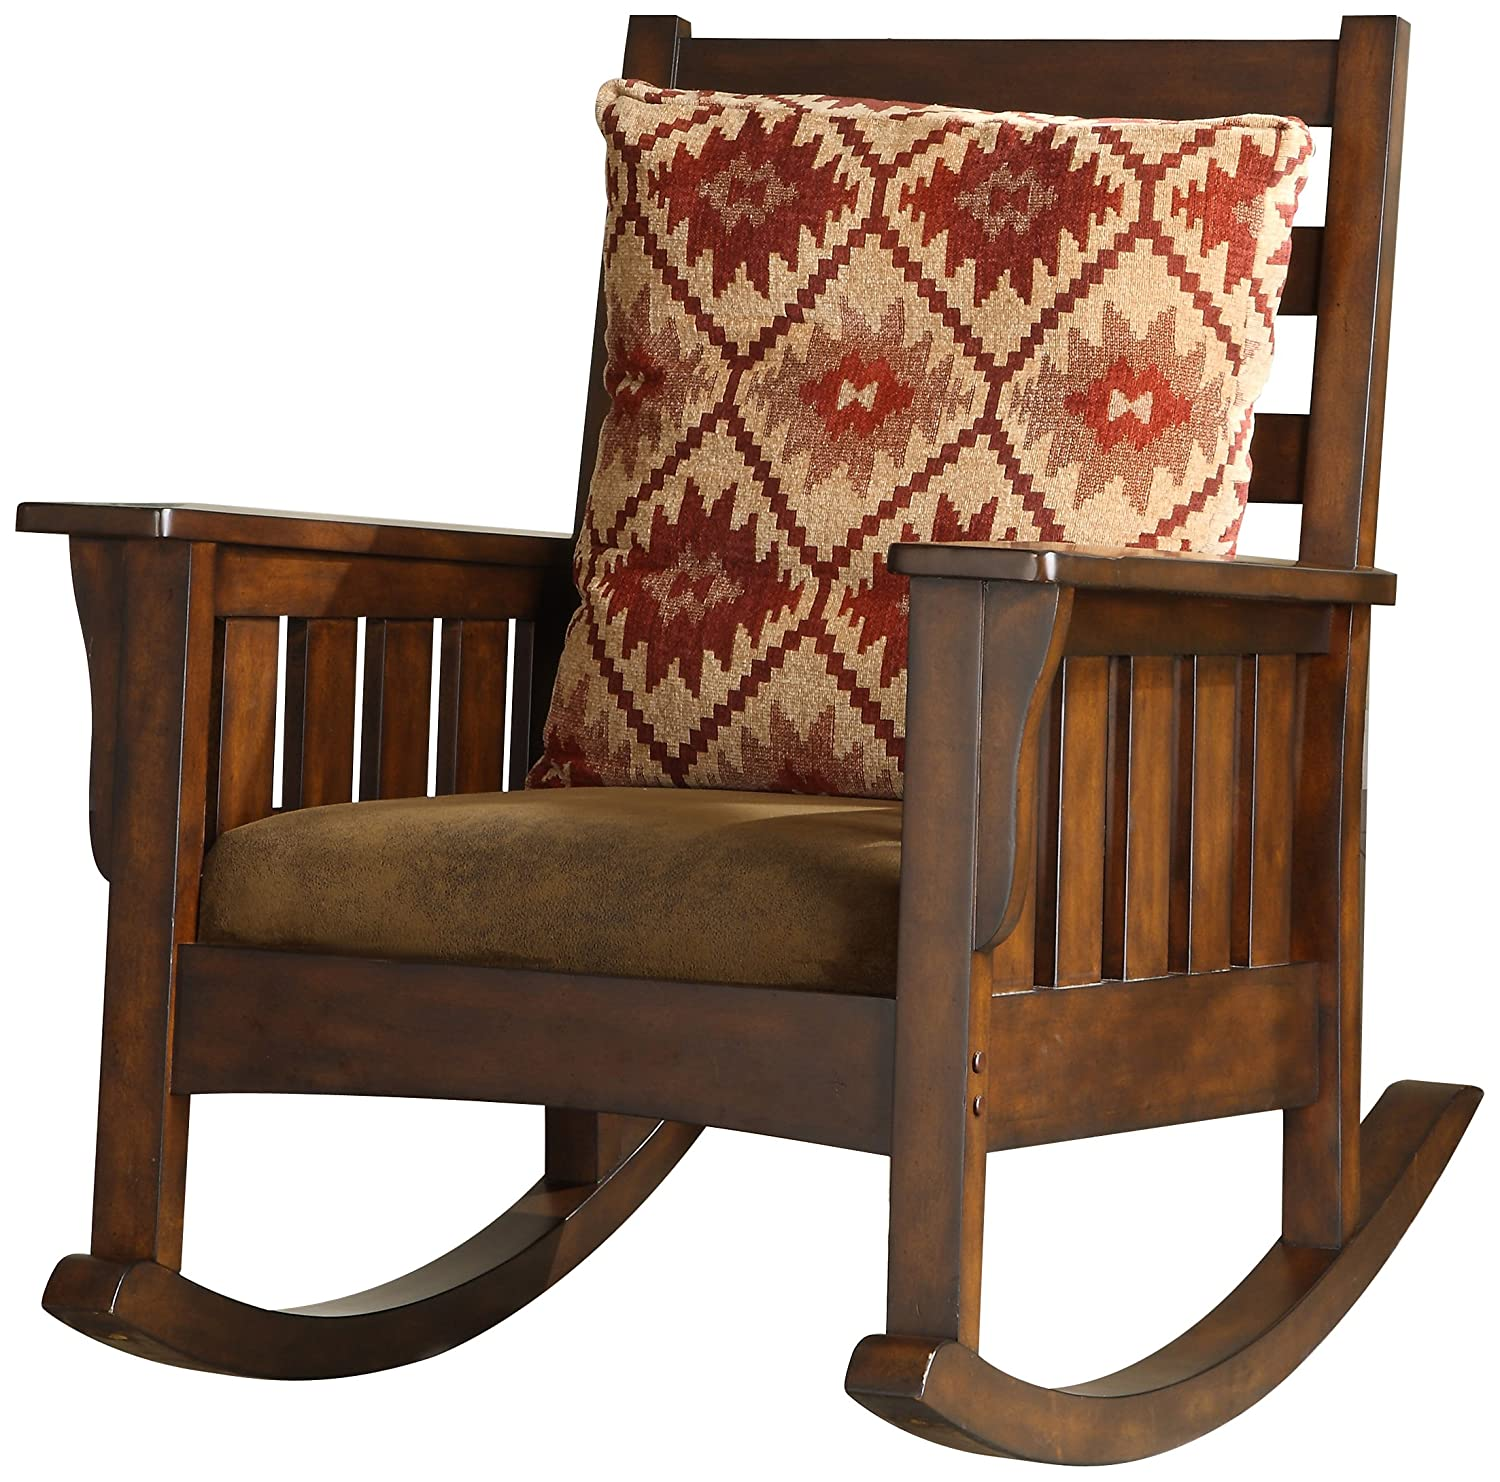 Amazon Furniture of America Oria Rocking Chair Dark Oak